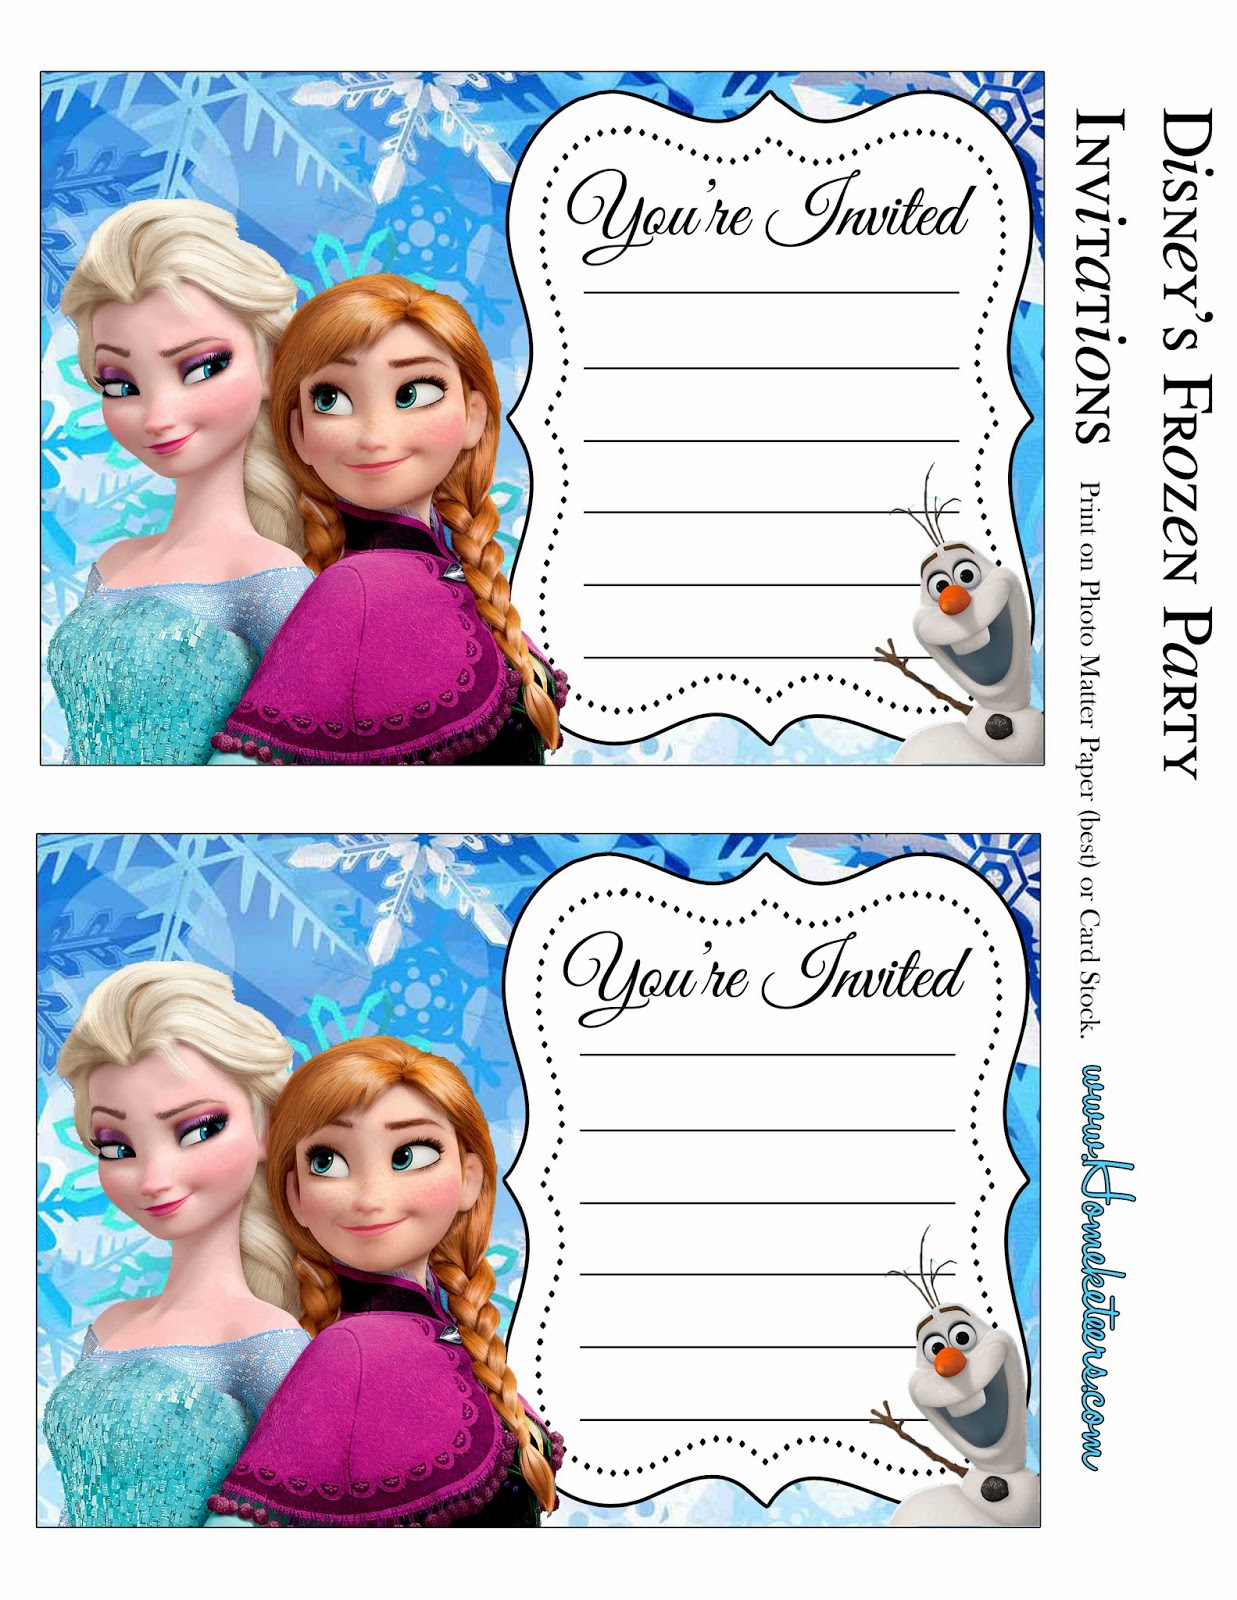 image regarding Frozen Printable Invitations identify Frozen Celebration: No cost Printable Invites. - Oh My Fiesta! within just